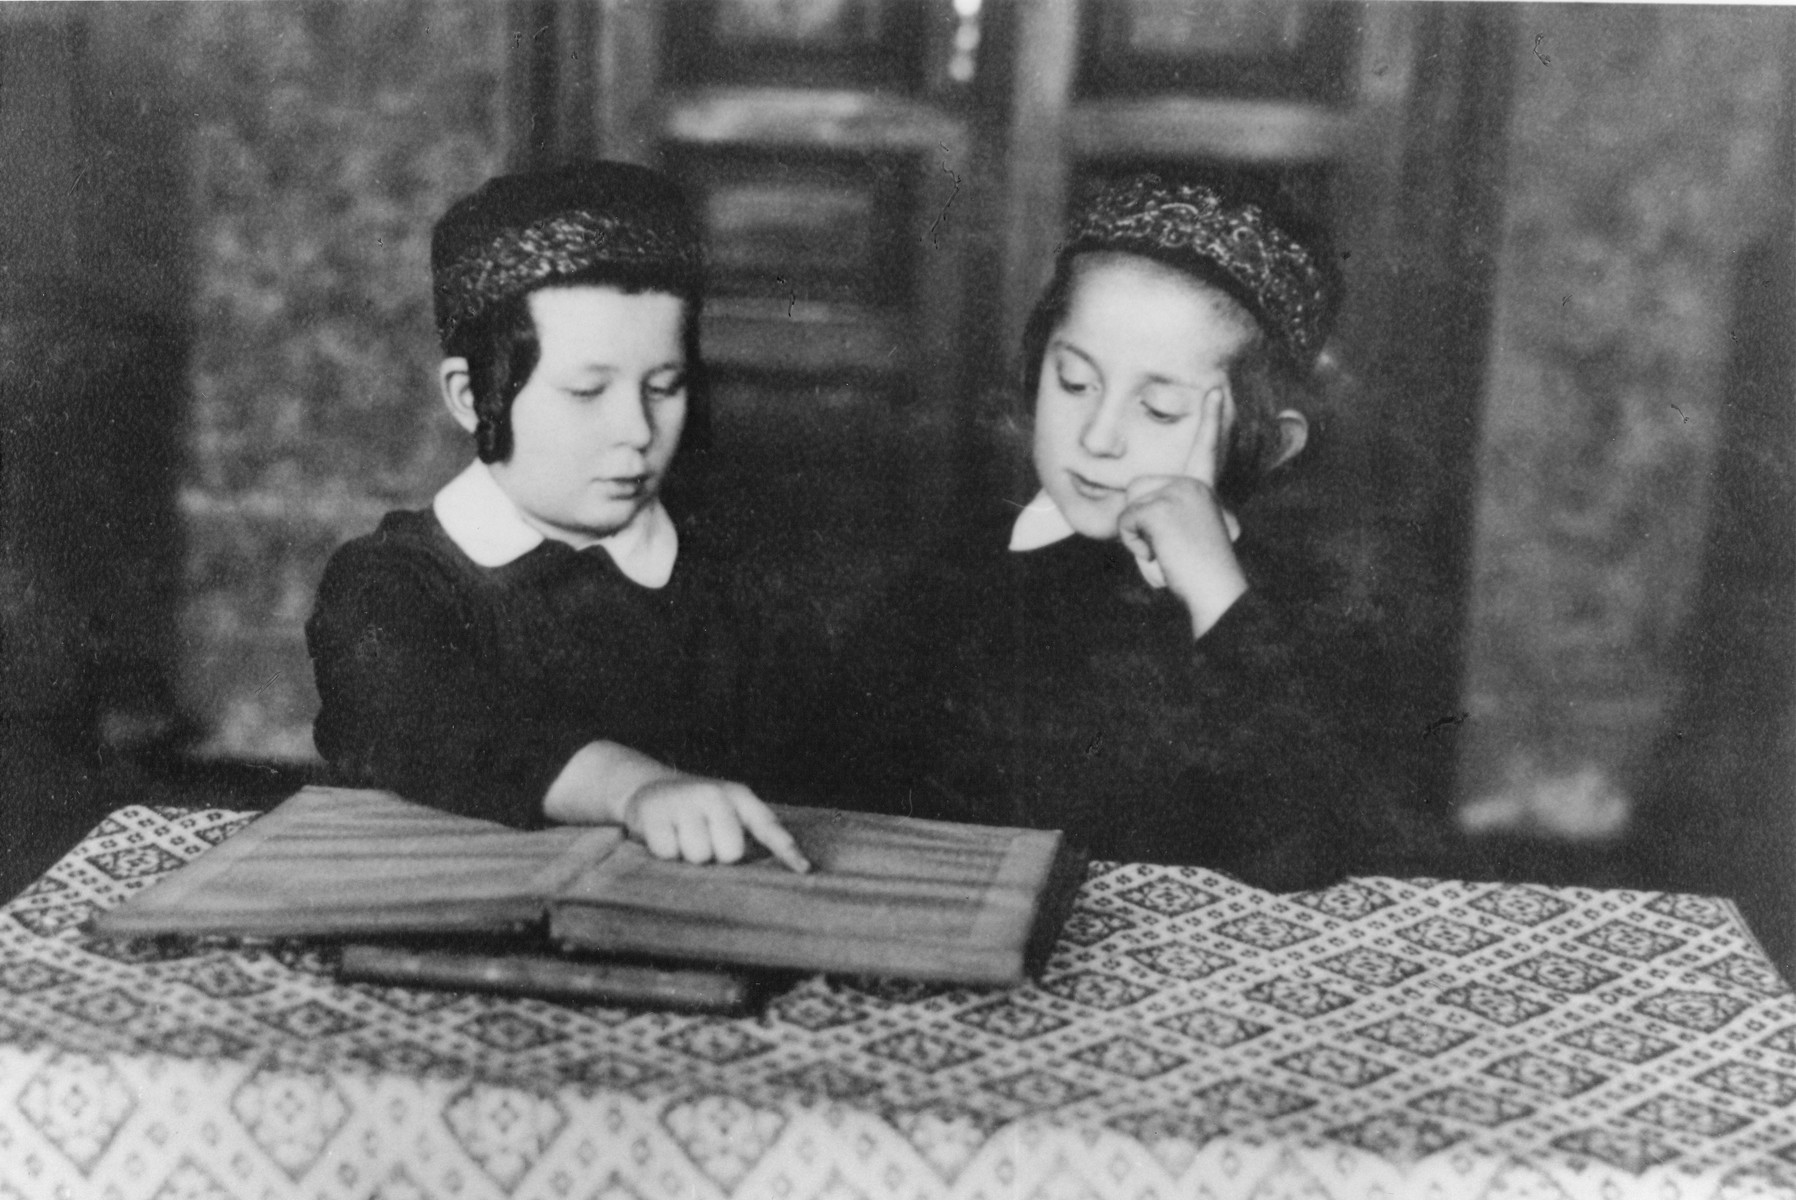 Two young Jewish Hasidic boys study a religious text while seated at a table.  Pictured on the right is Menahem-Mendel Horowitz, the seven-year-old son of Rabbi Tuvia Horowitz.